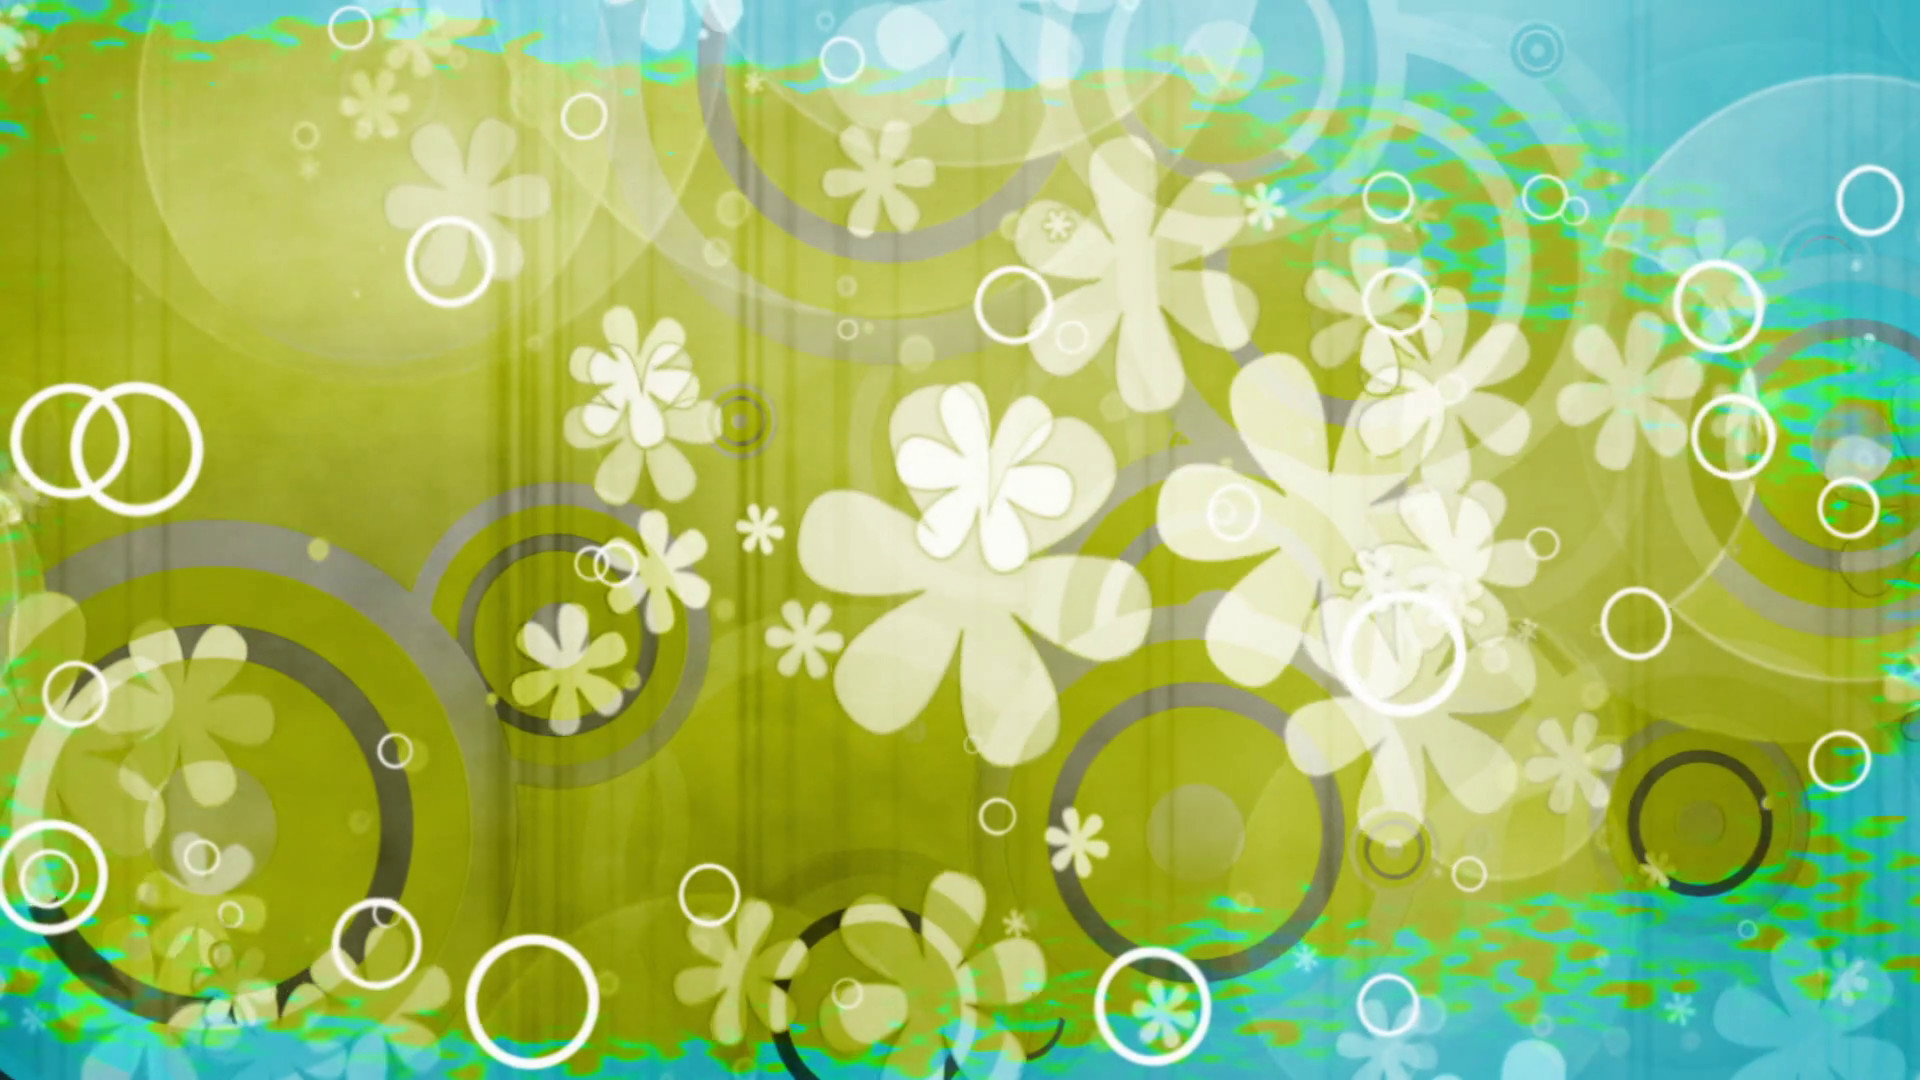 1920x1080 Color rip retro flowers and shapes looping green and blue abstract animated  CG background